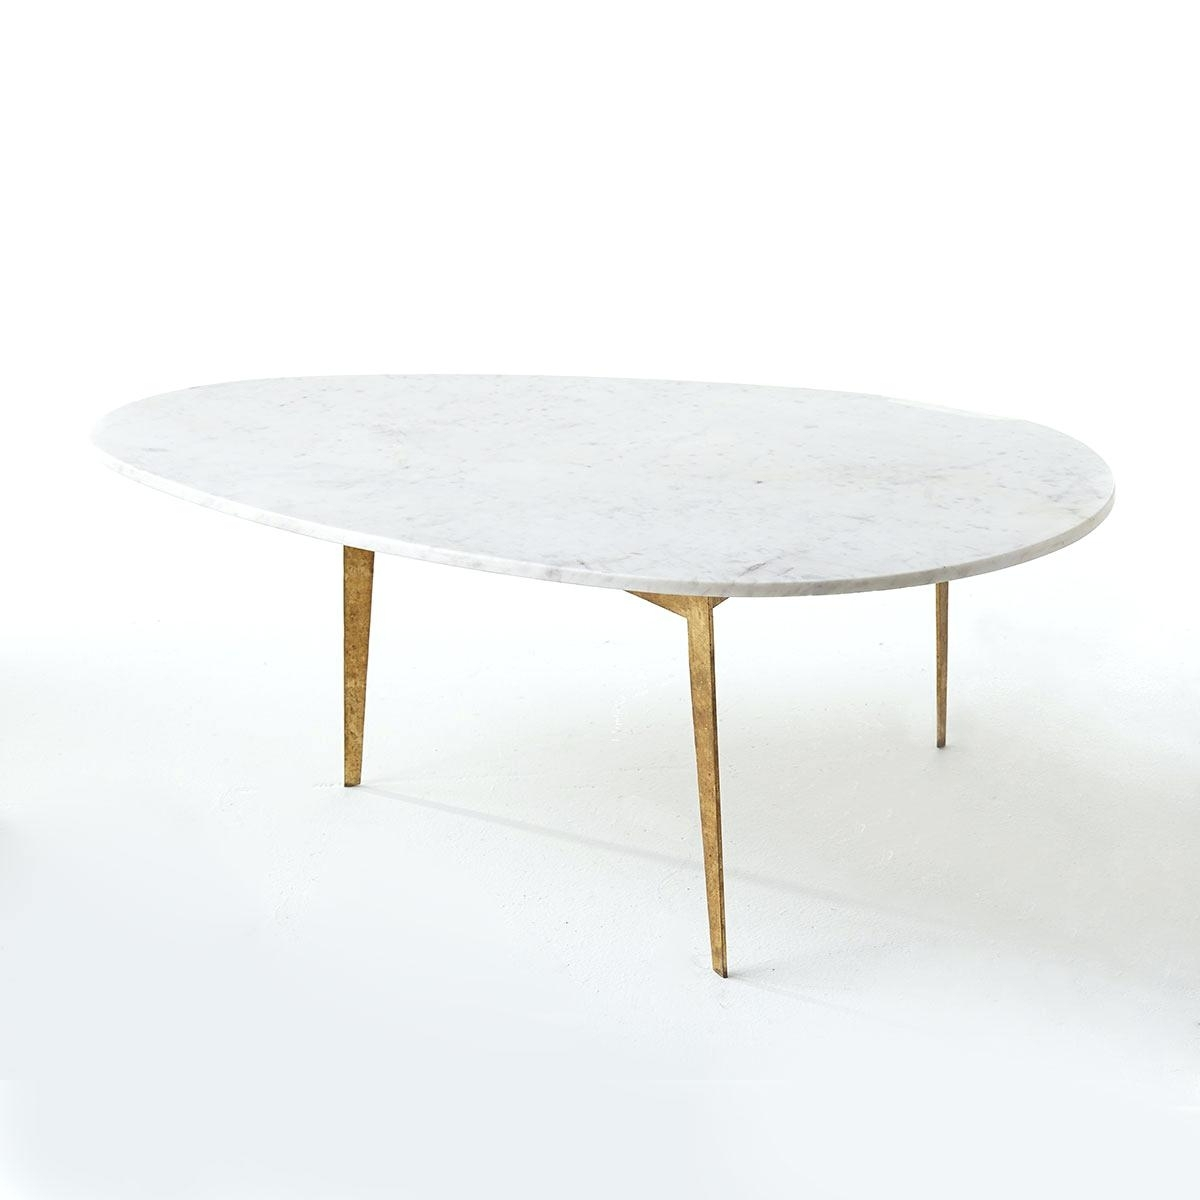 Well Known Mid Century Modern Egg Tables Pertaining To Mid Century Table Shop Modern End Tables On In Design Legs (View 6 of 20)